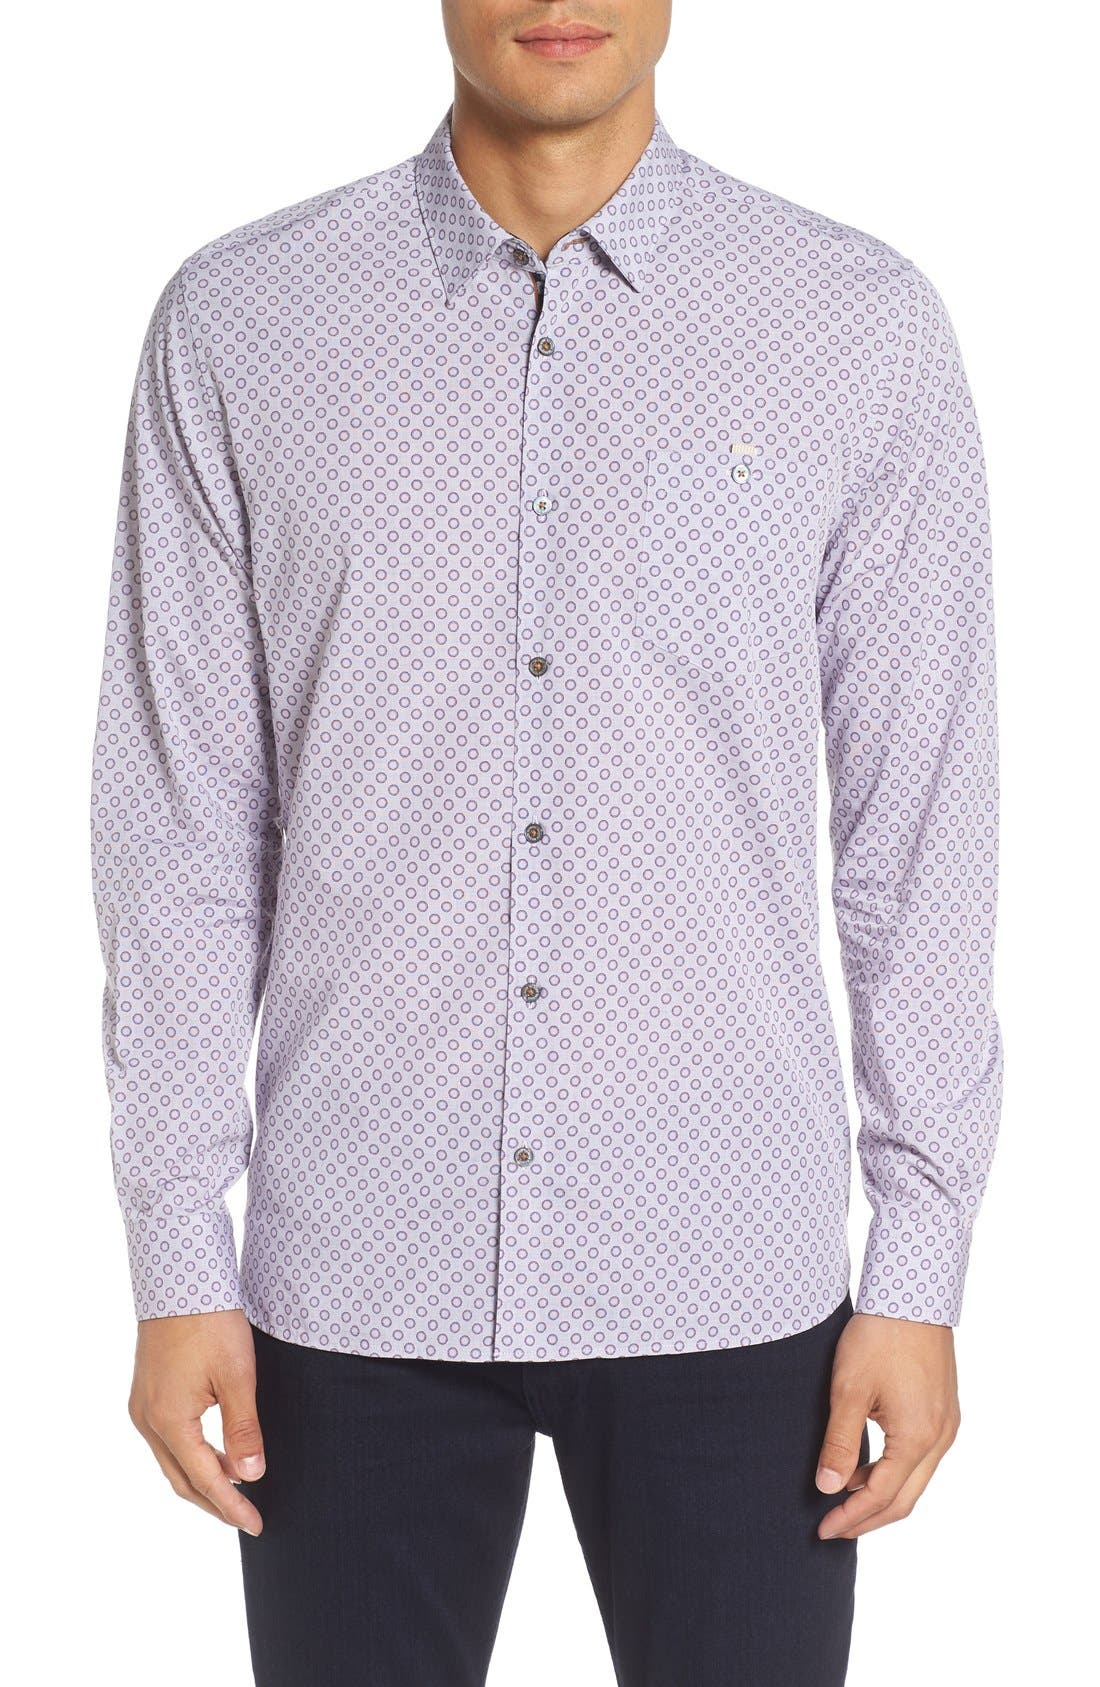 TED BAKER LONDON 'Thegril' Trim Fit Print Sport Shirt, Main, color, 510